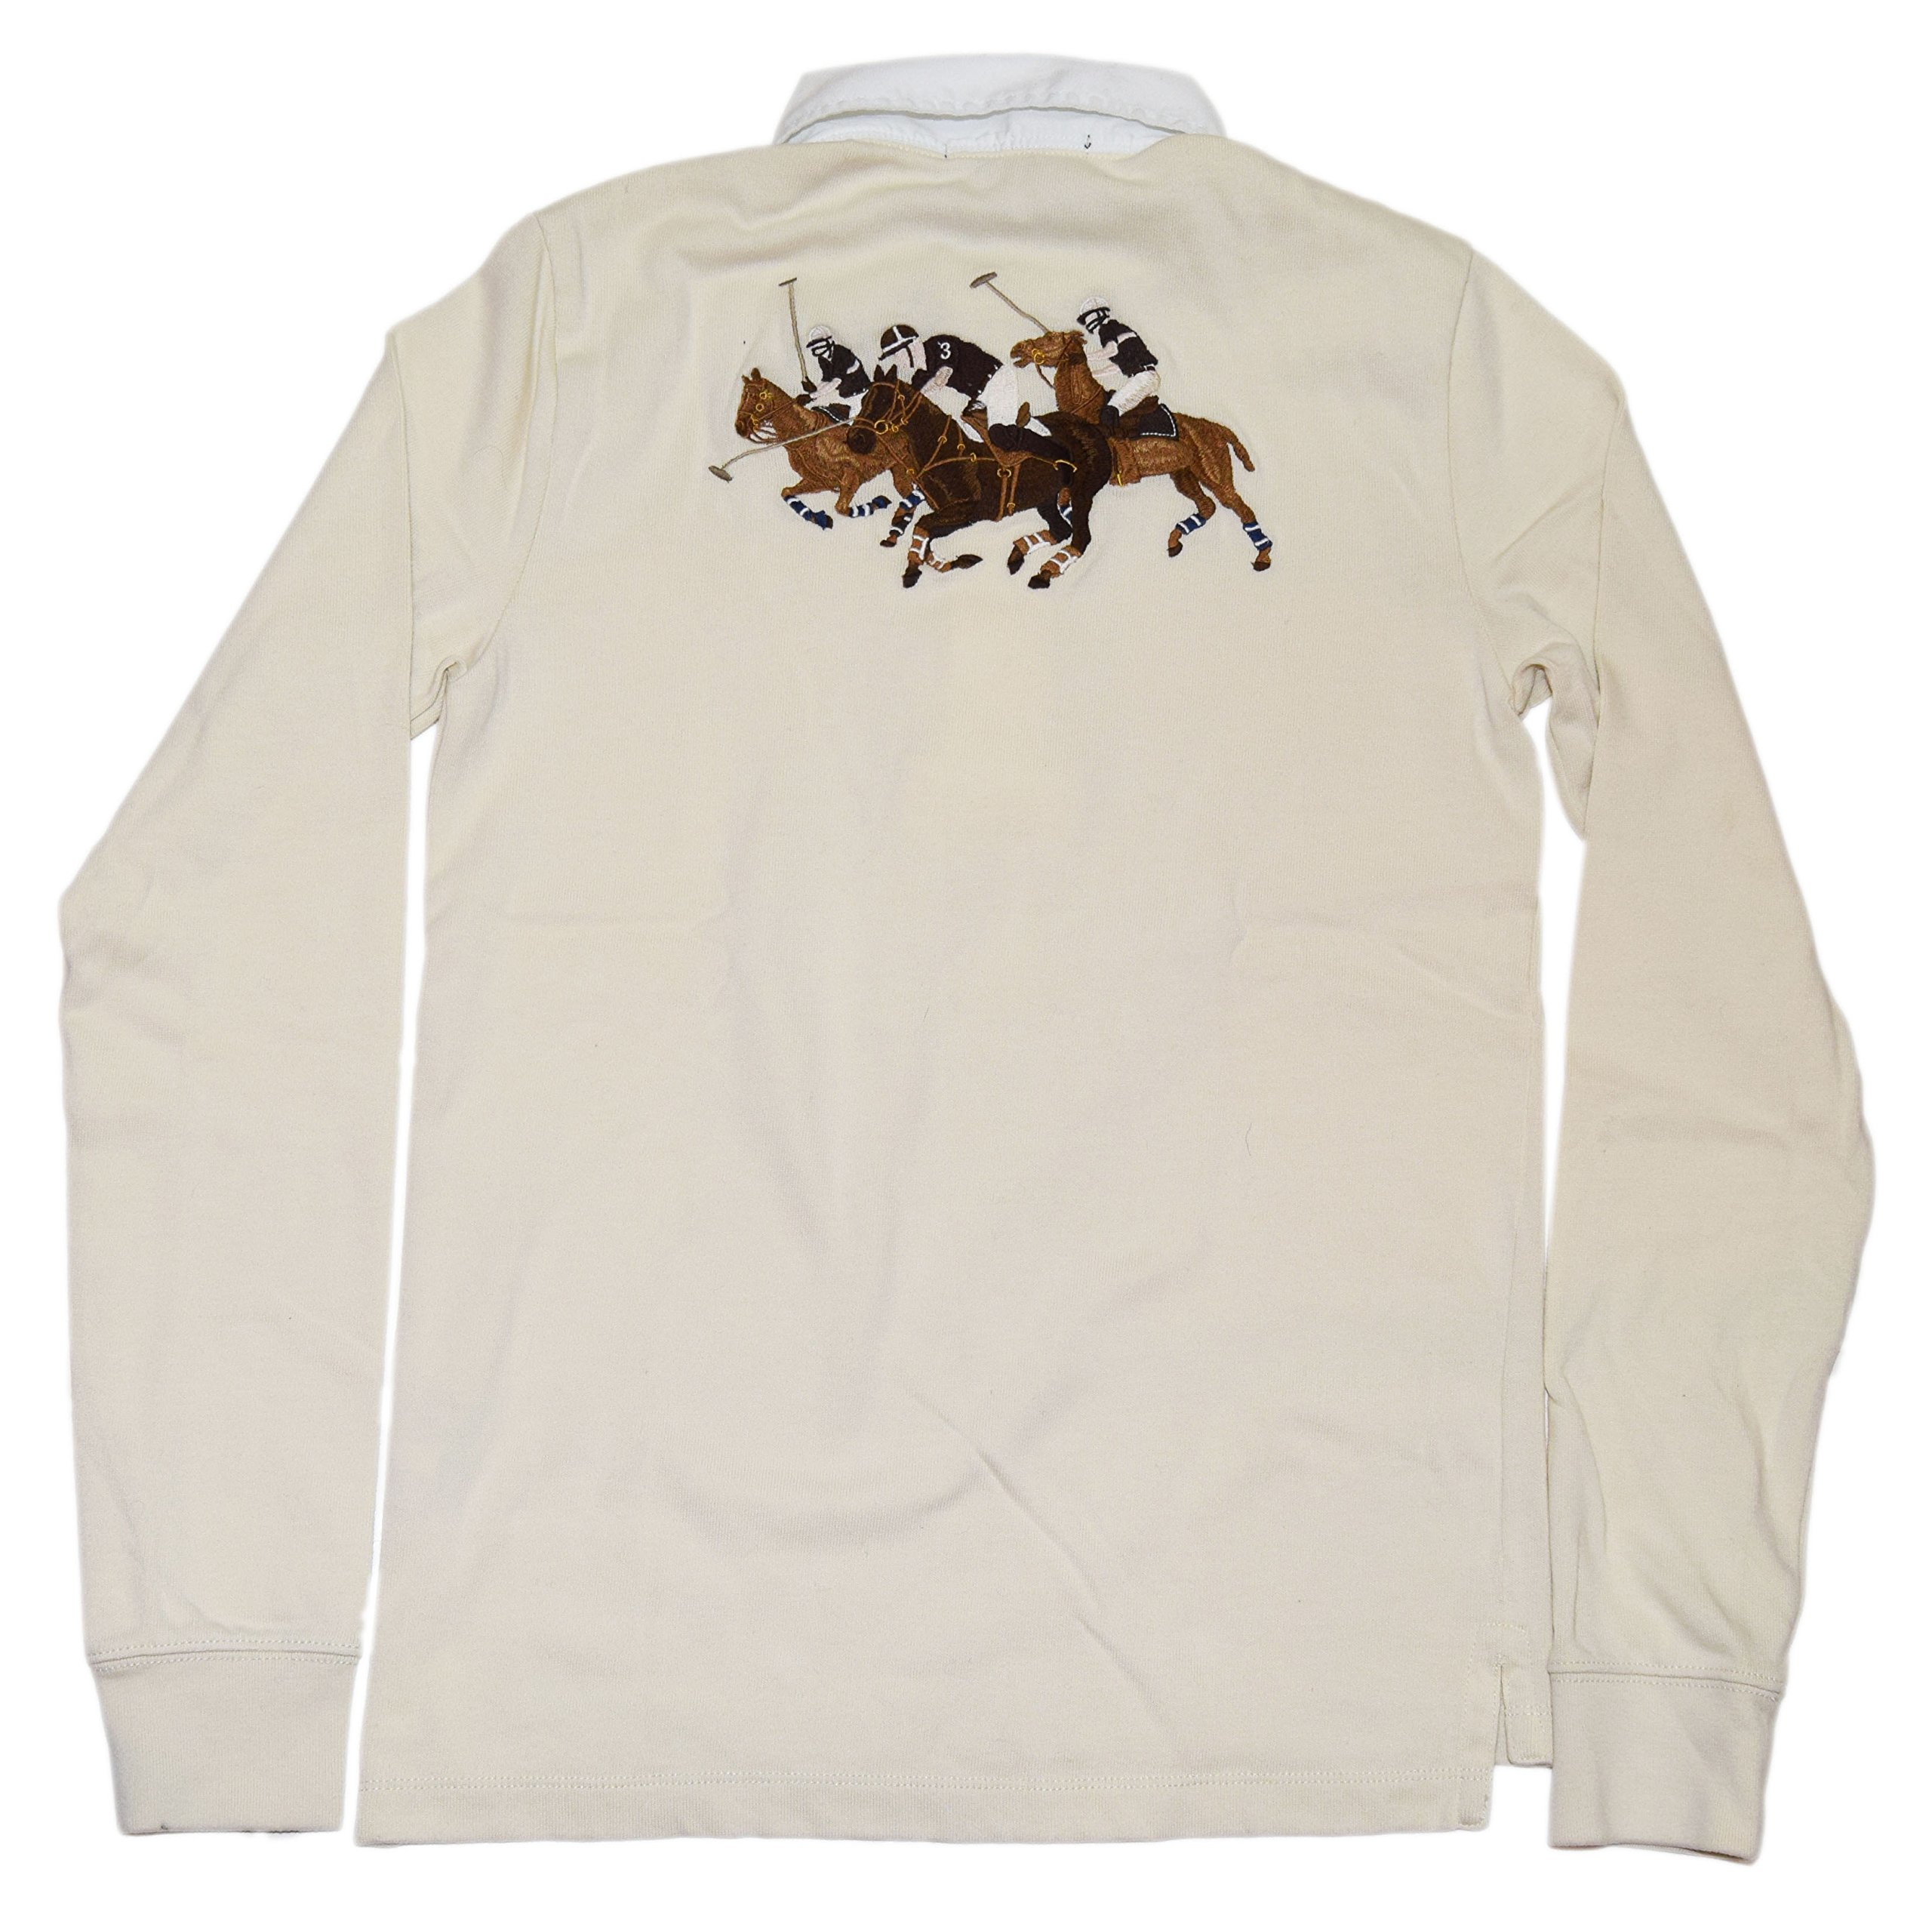 Polo Ralph Lauren Sport Womens Pullover Big Pony Match Shirt Cream White Large